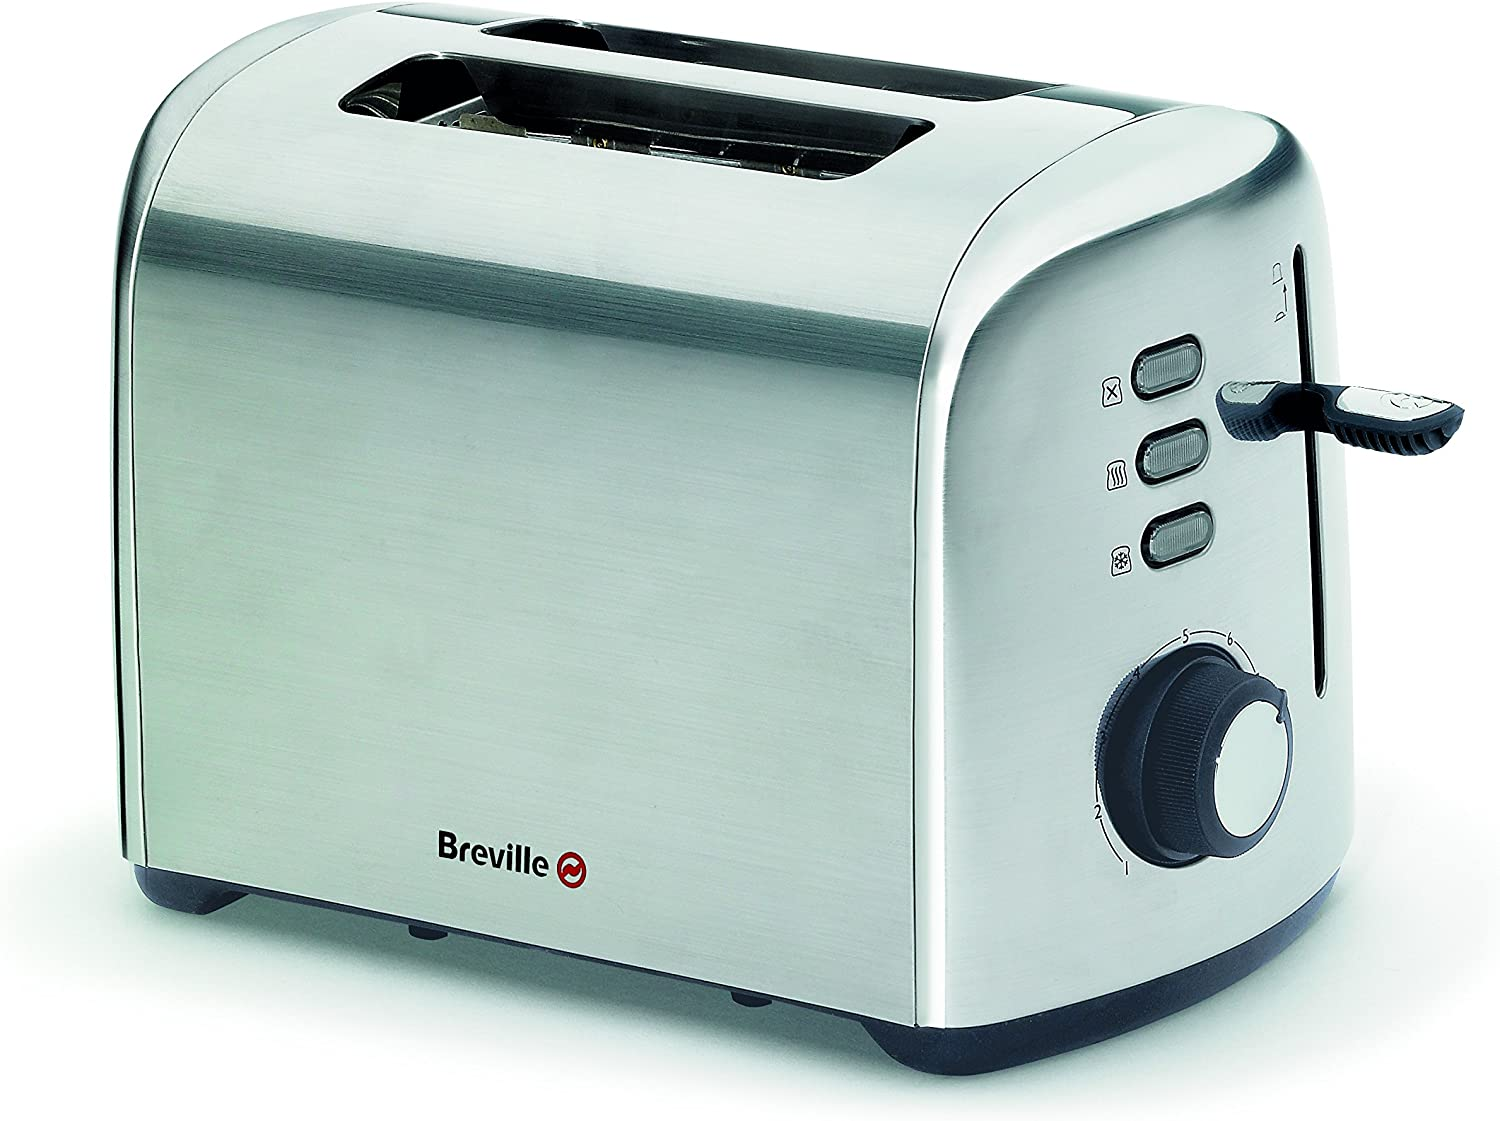 Breville BRVTT505X Brushed Stainless Toaster, 220-240 Volt/ 50 Hz, (INTERNATIONAL VOLTAGE & PLUG) FOR OVERSEAS USE ONLY WILL NOT WORK IN THE US, OUR PRODUCT ARE BRAND NEW, WE DO NOT SELL USED OR REFERBUSHED PRODUCTS.